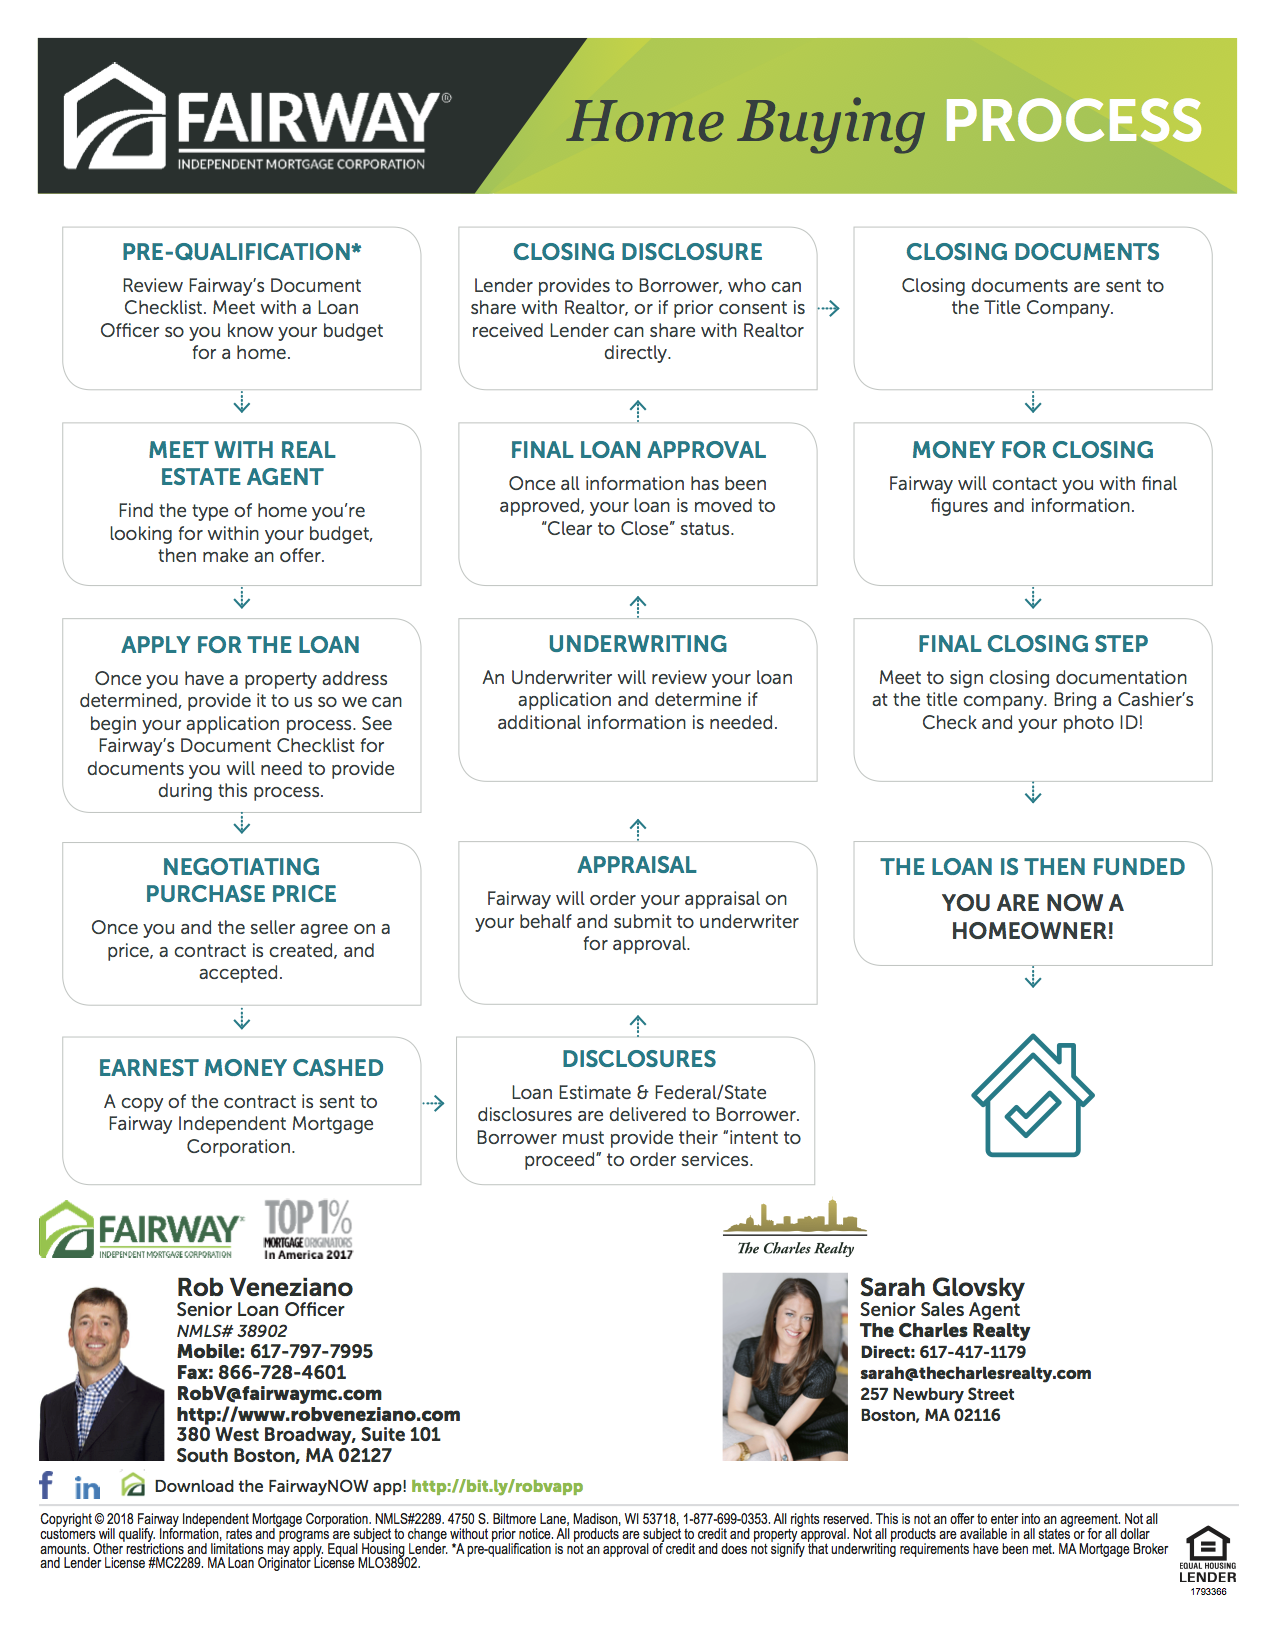 Boston Real Estate News & Advice   The Charles Realty - Back Bay